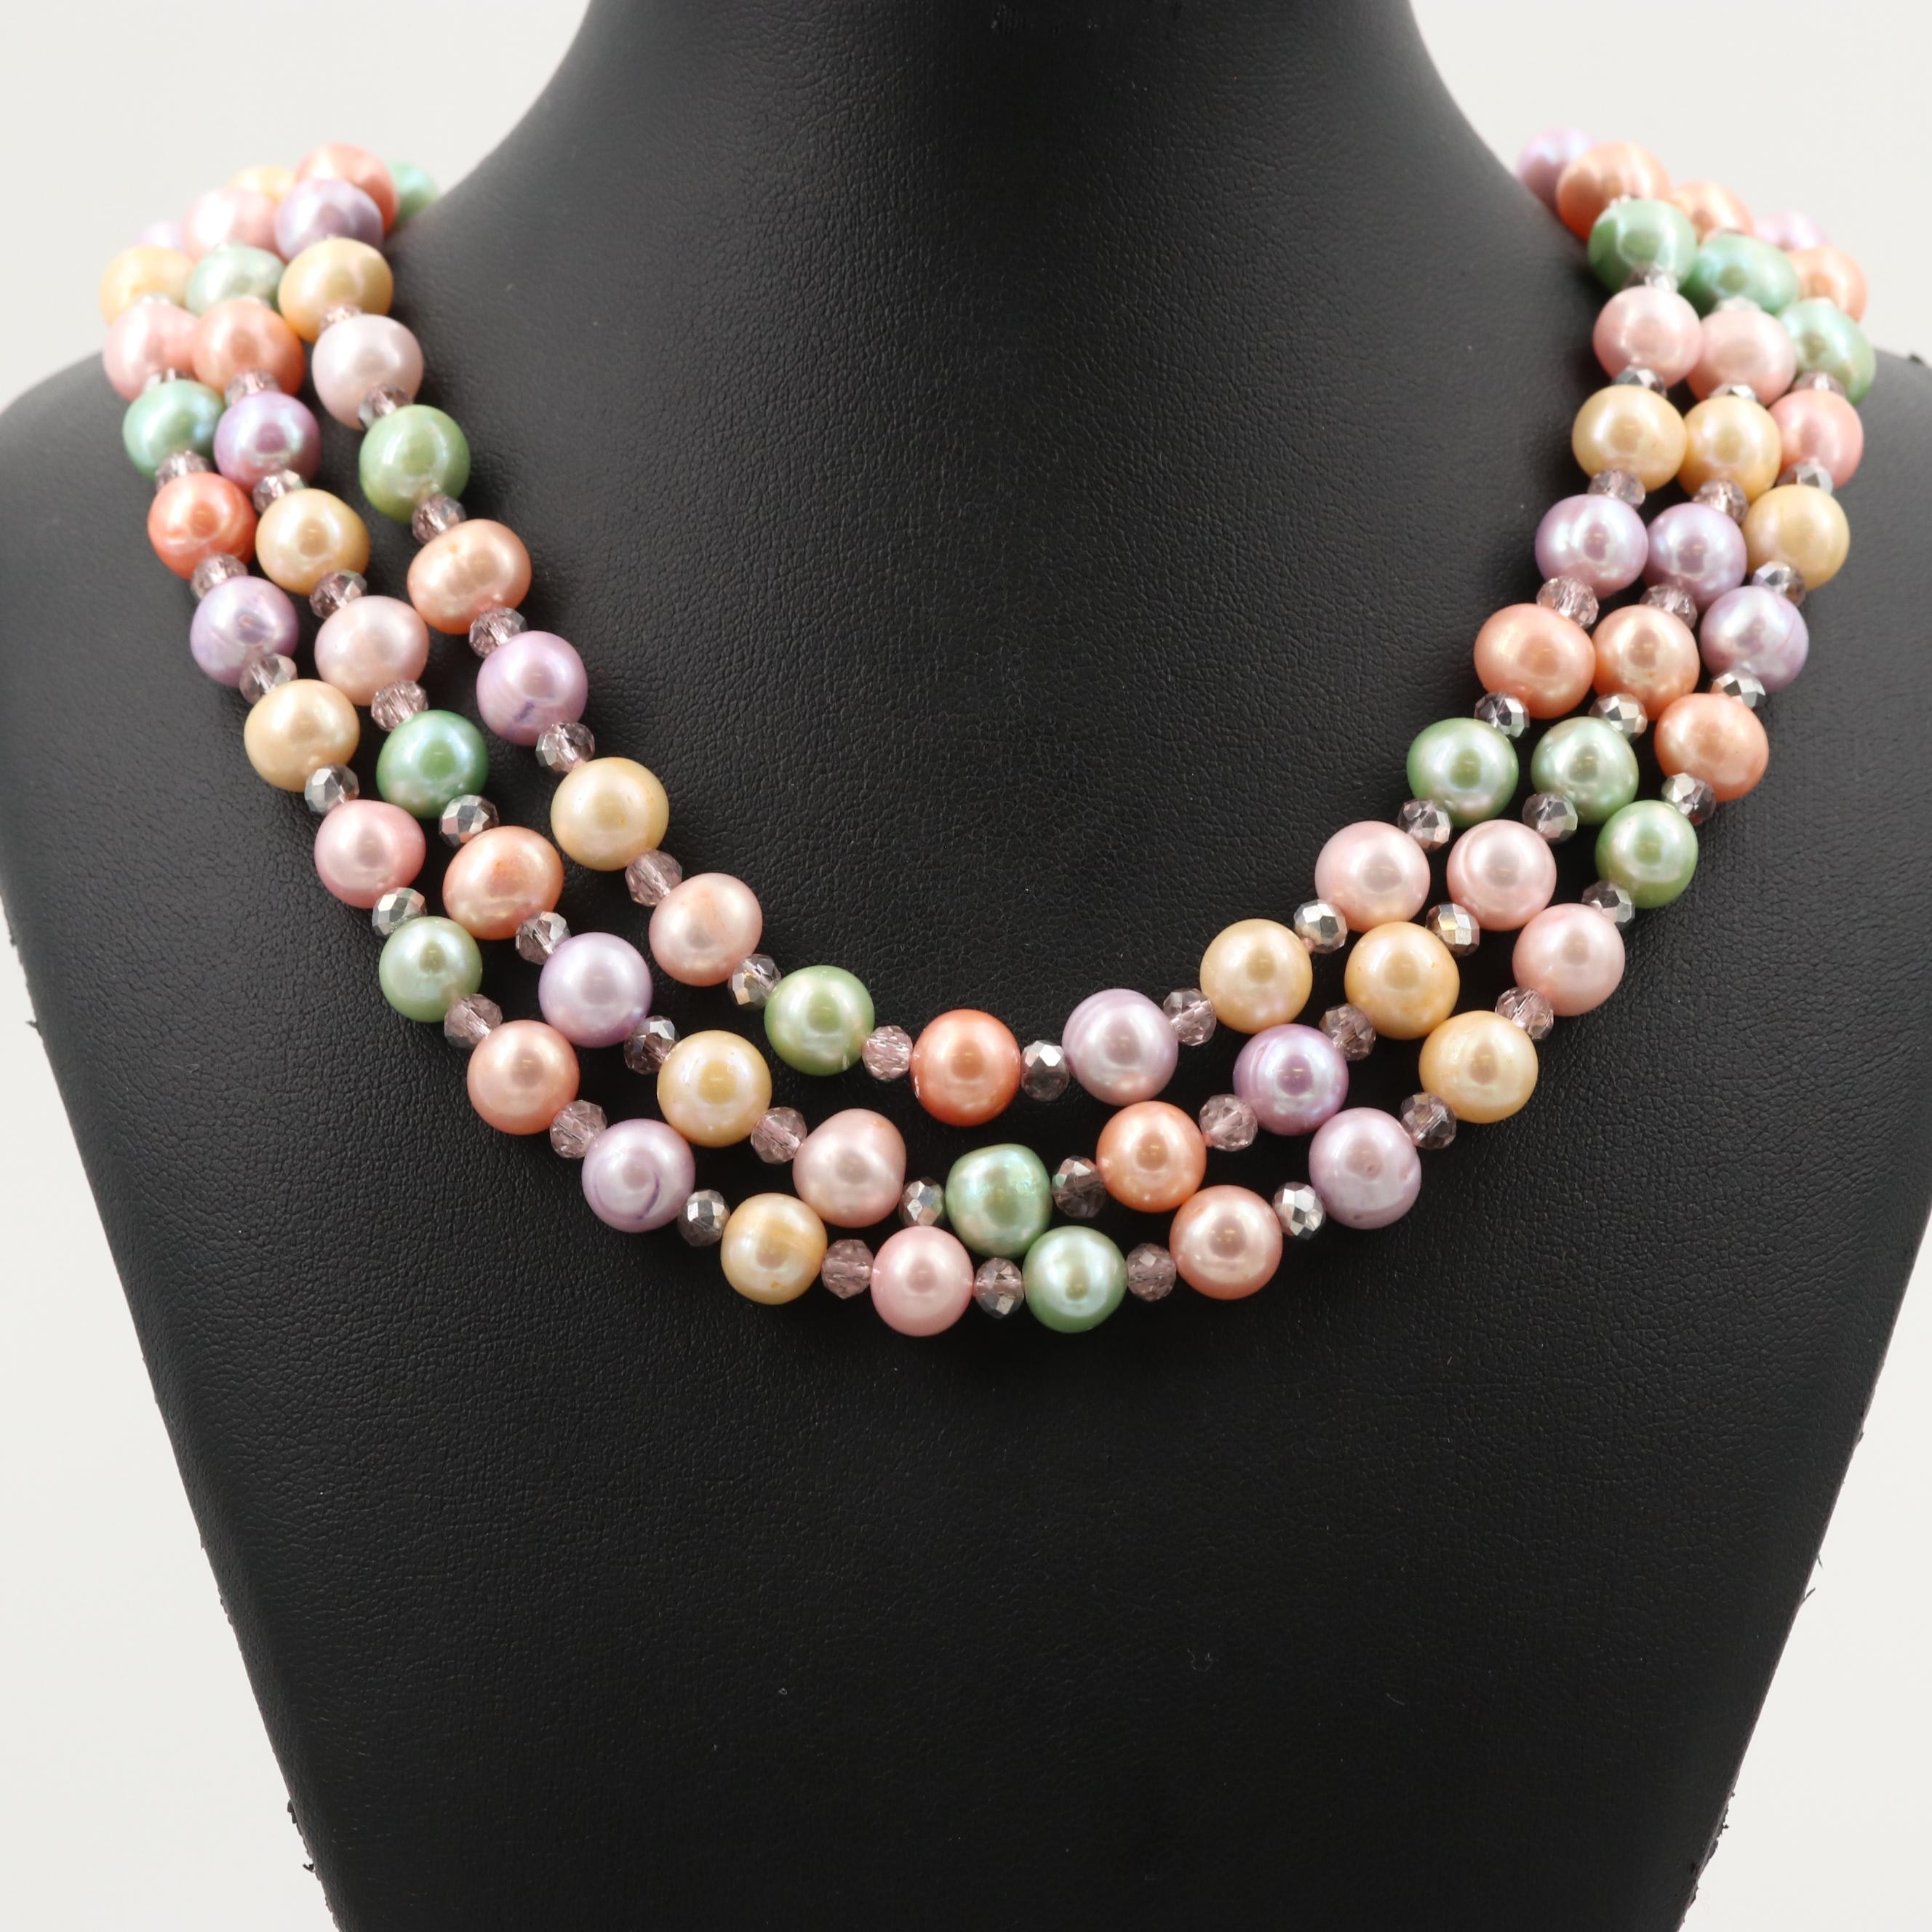 Triple Strand Multi Colored Cultured Pearl Necklace and Sterling Silver Findings